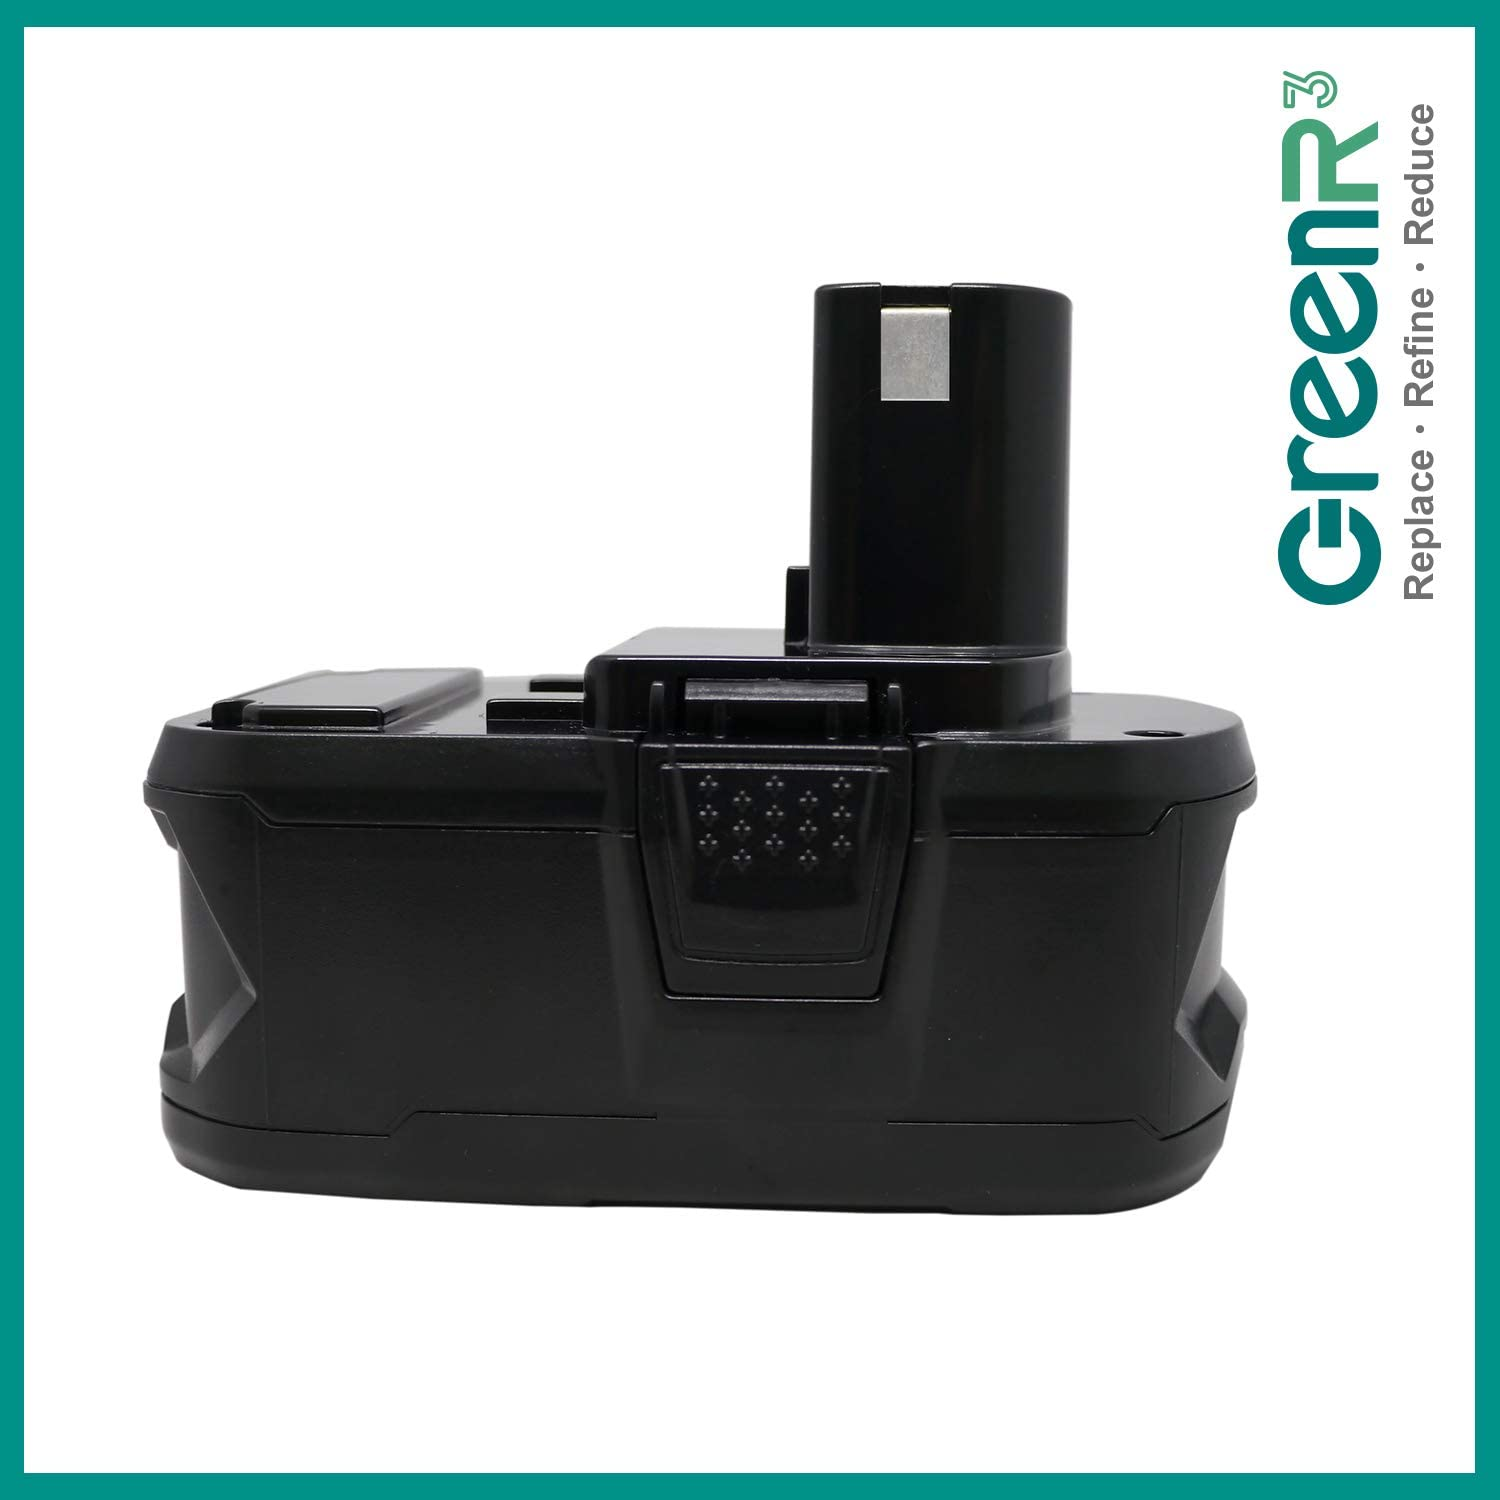 4.0Ah Replacement Li-ion Battery for Ryobi ONE+ P108 18V